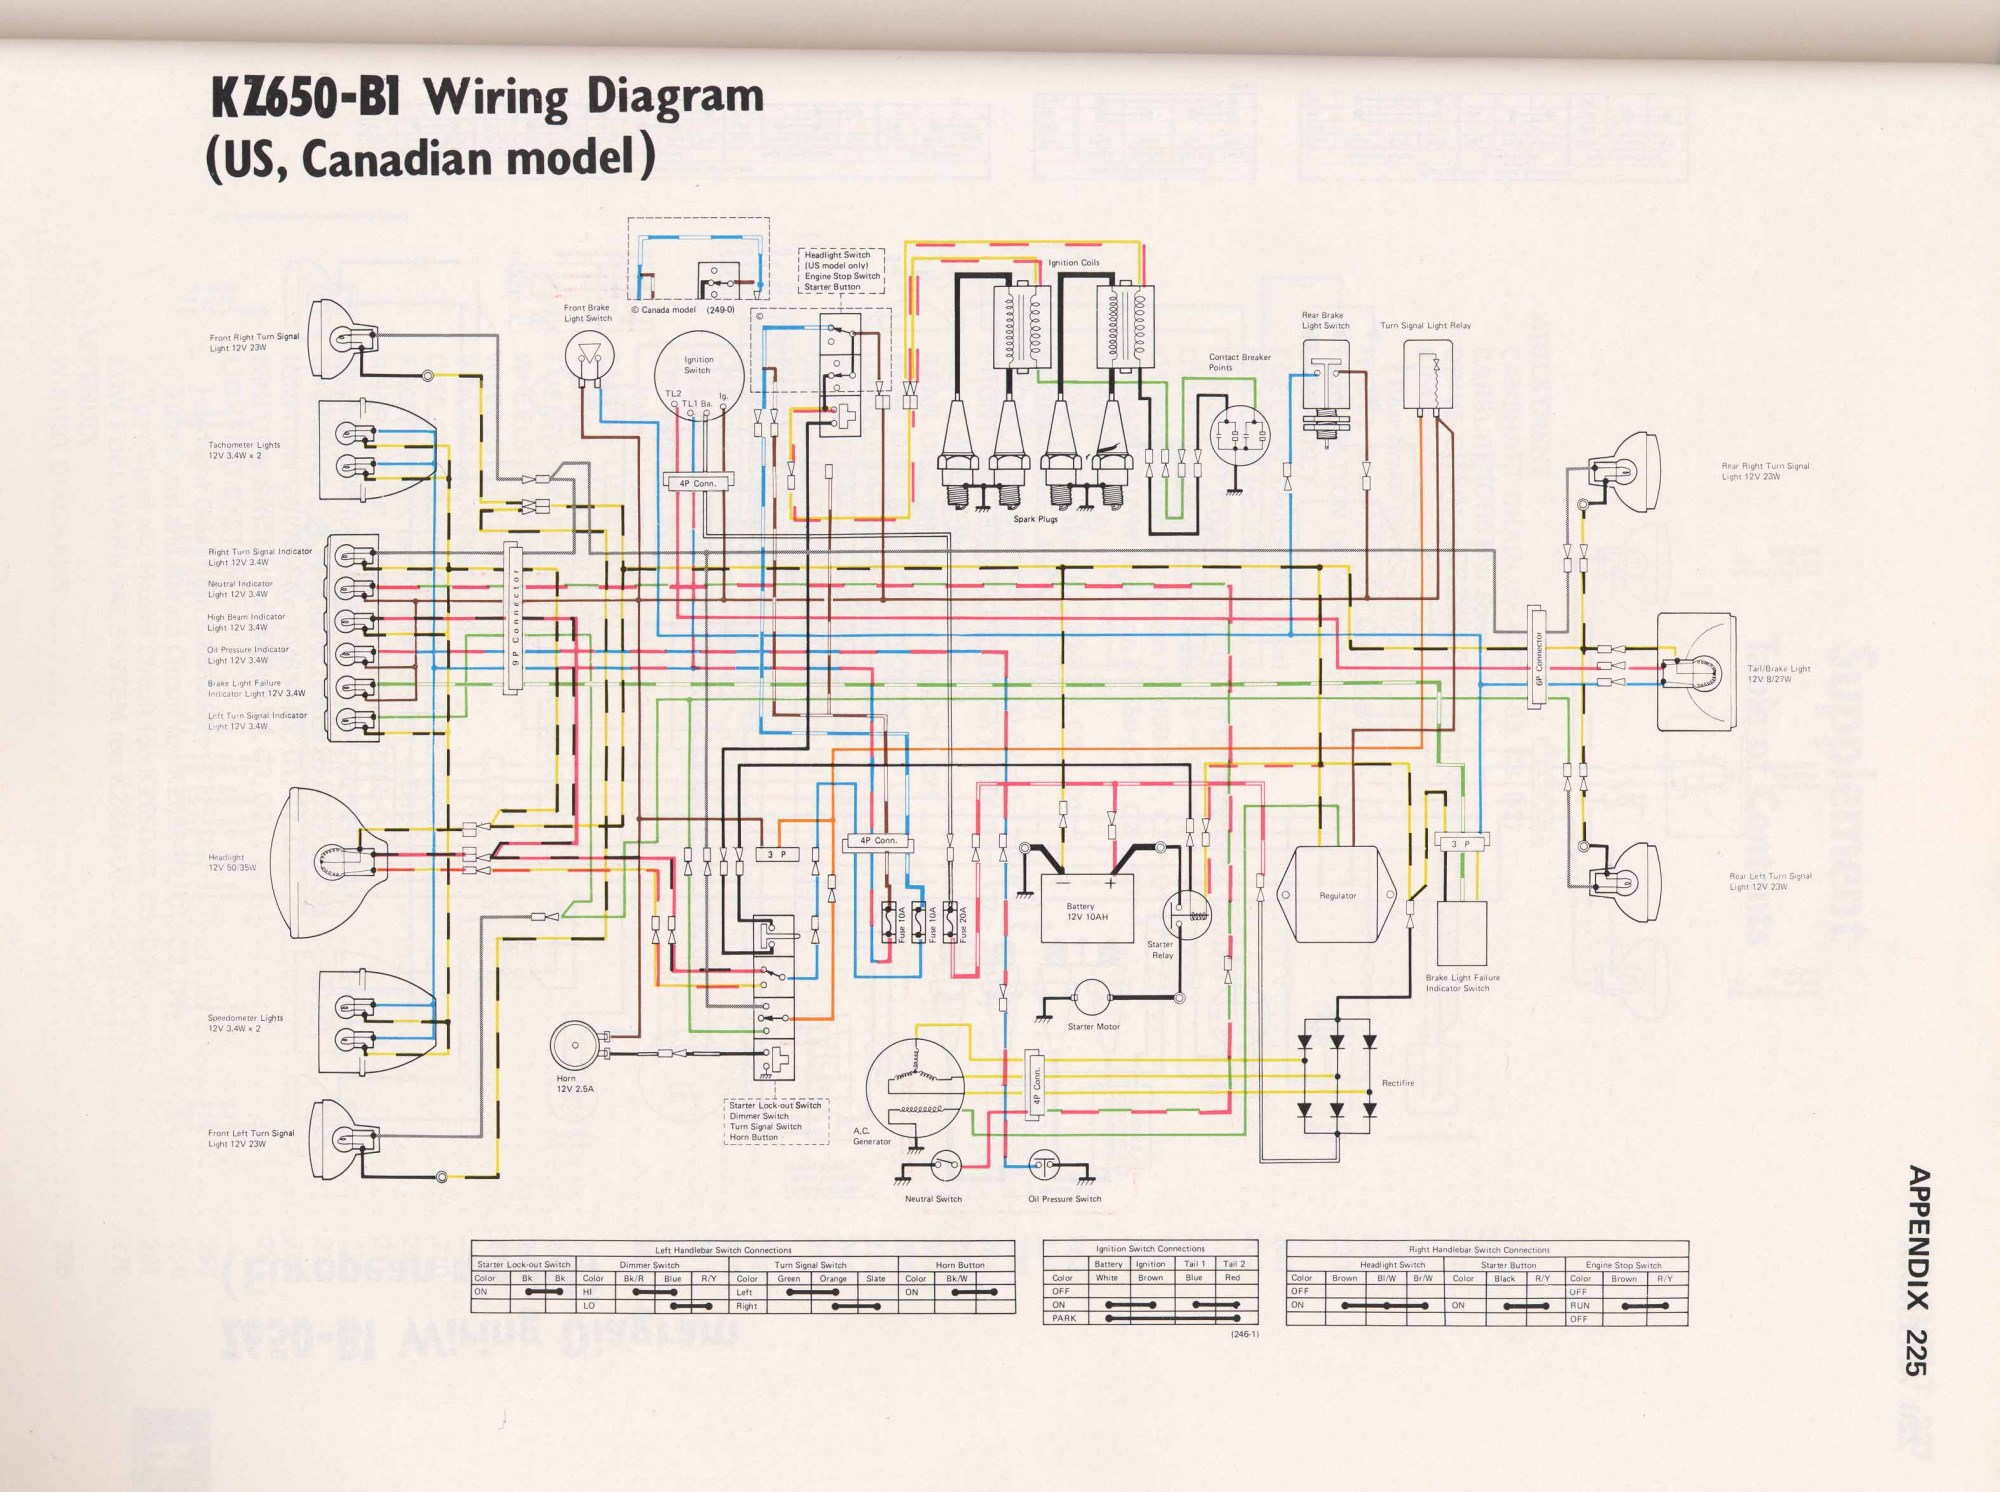 hight resolution of kz650 info wiring diagrams rh diagrams kz650 info 1977 kawasaki kz650 wiring harness pride revo wiring